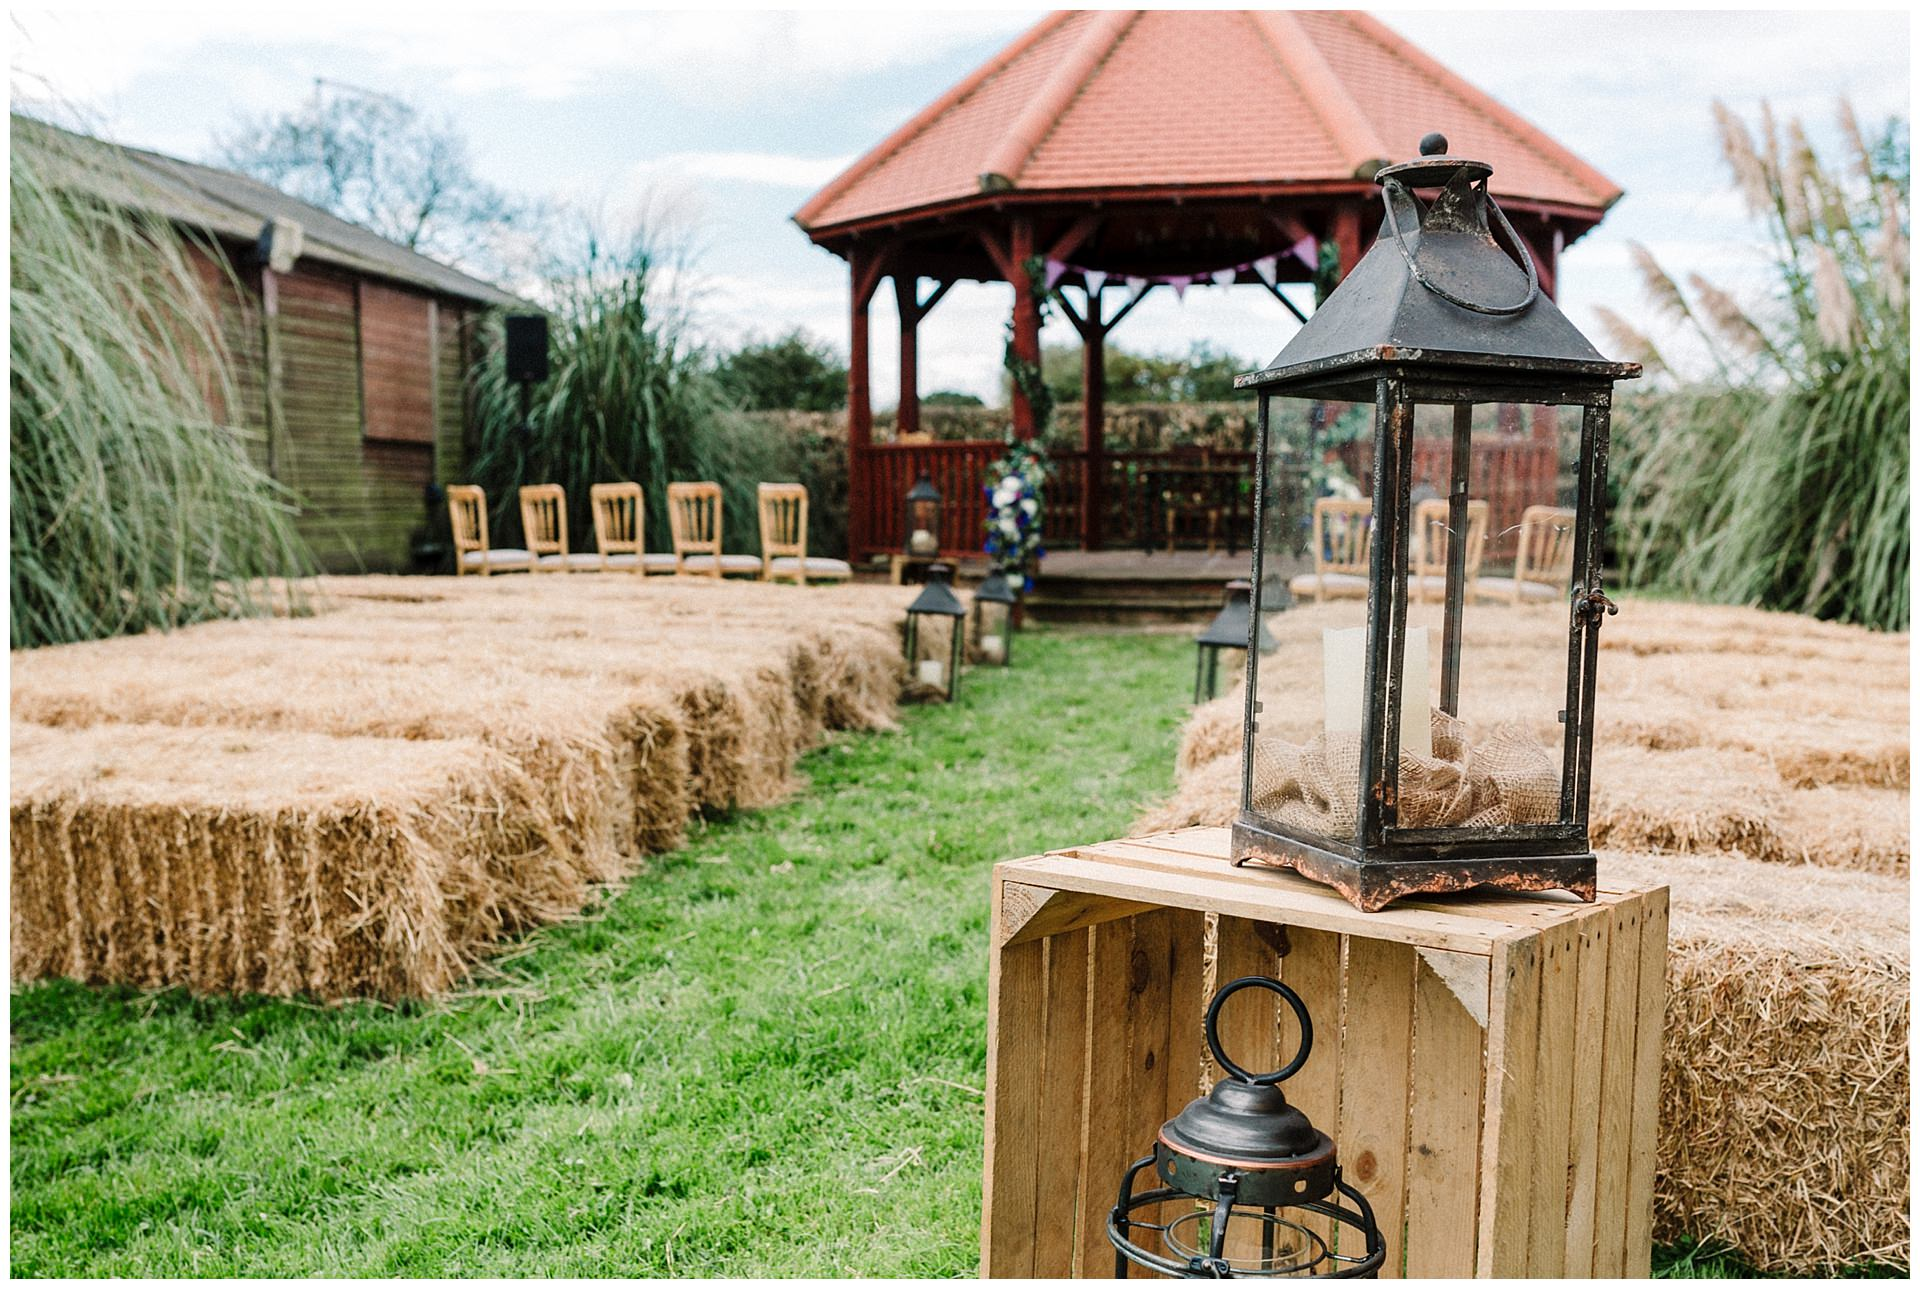 A gazebo and hay bails set up ready for a wedding in Yorkshire